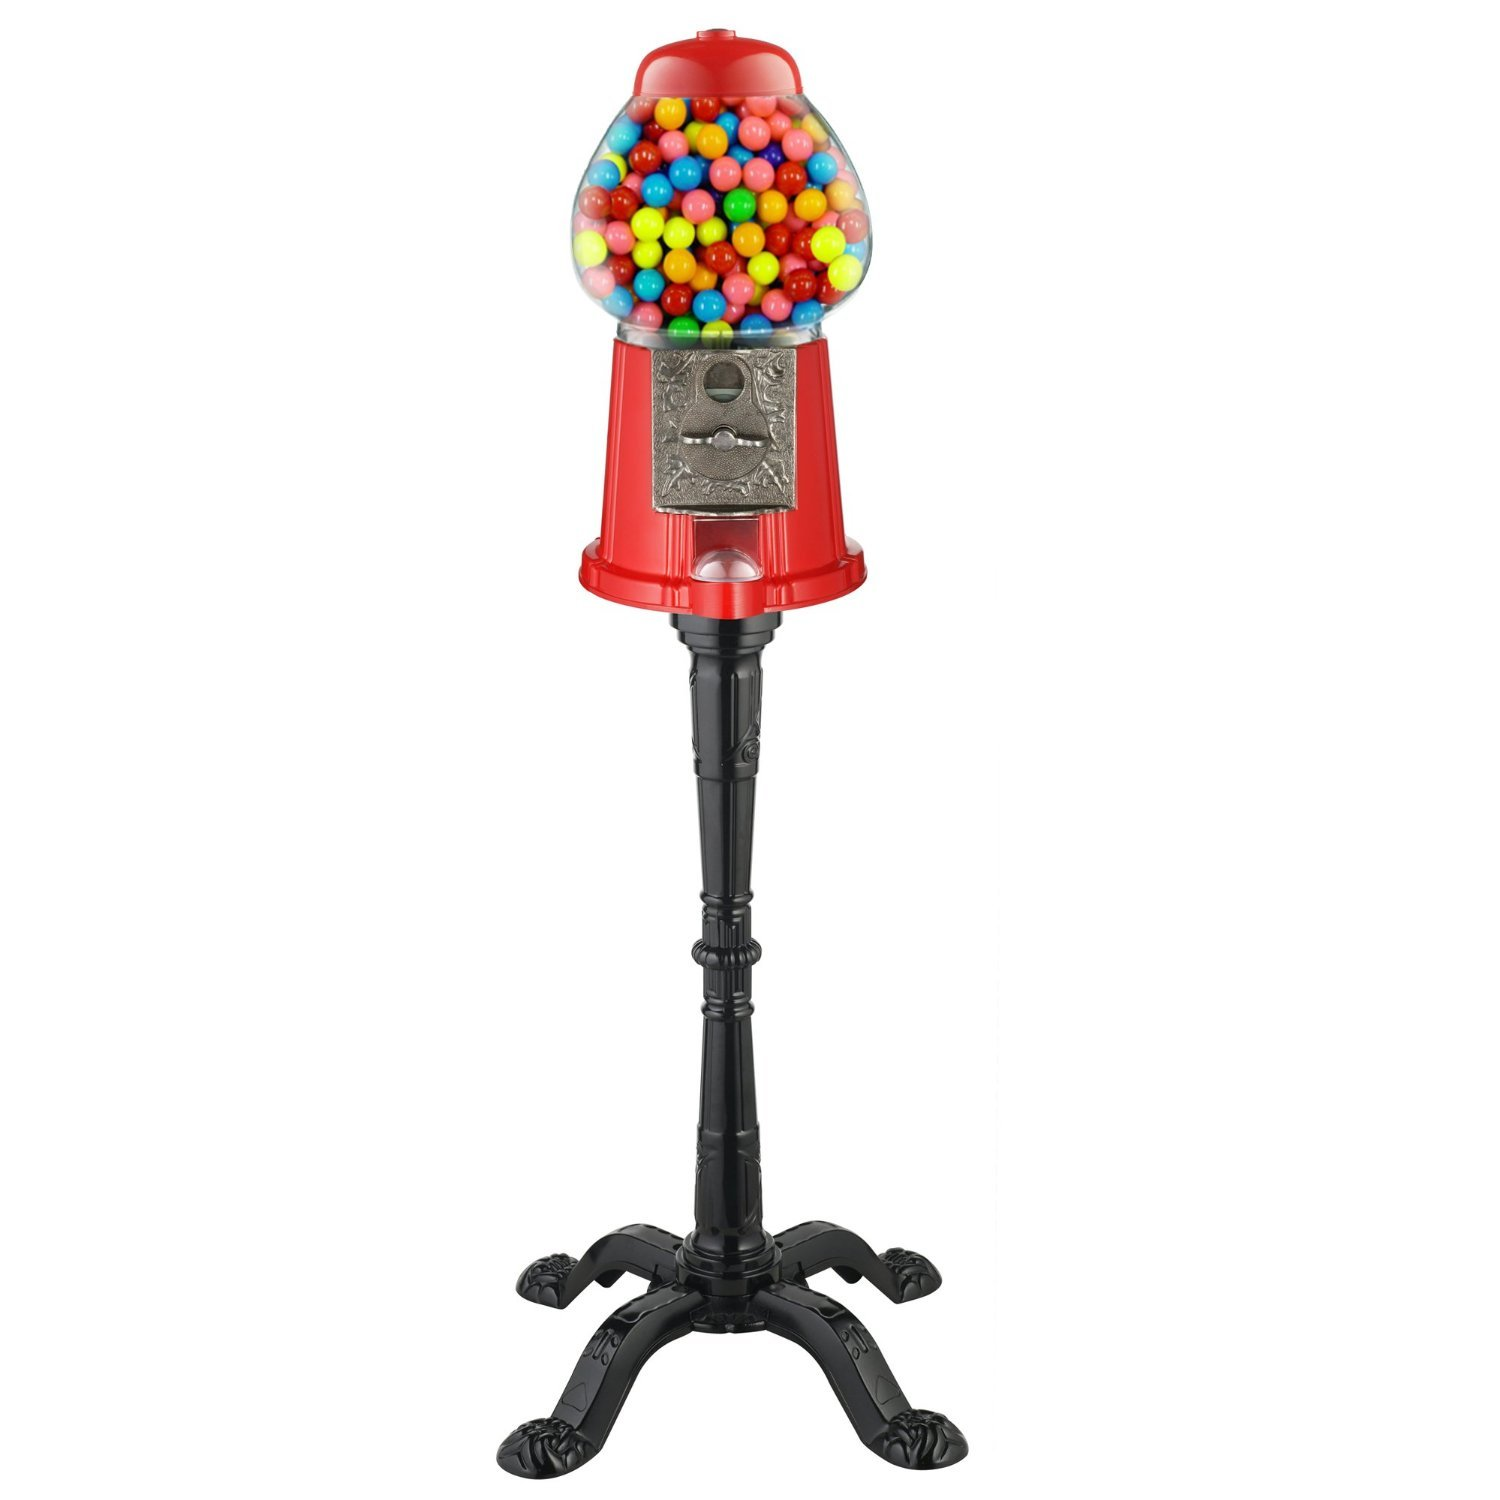 Store Carousel King Size Antique Gumball with Machine San Diego Mall 62 Stand Holds